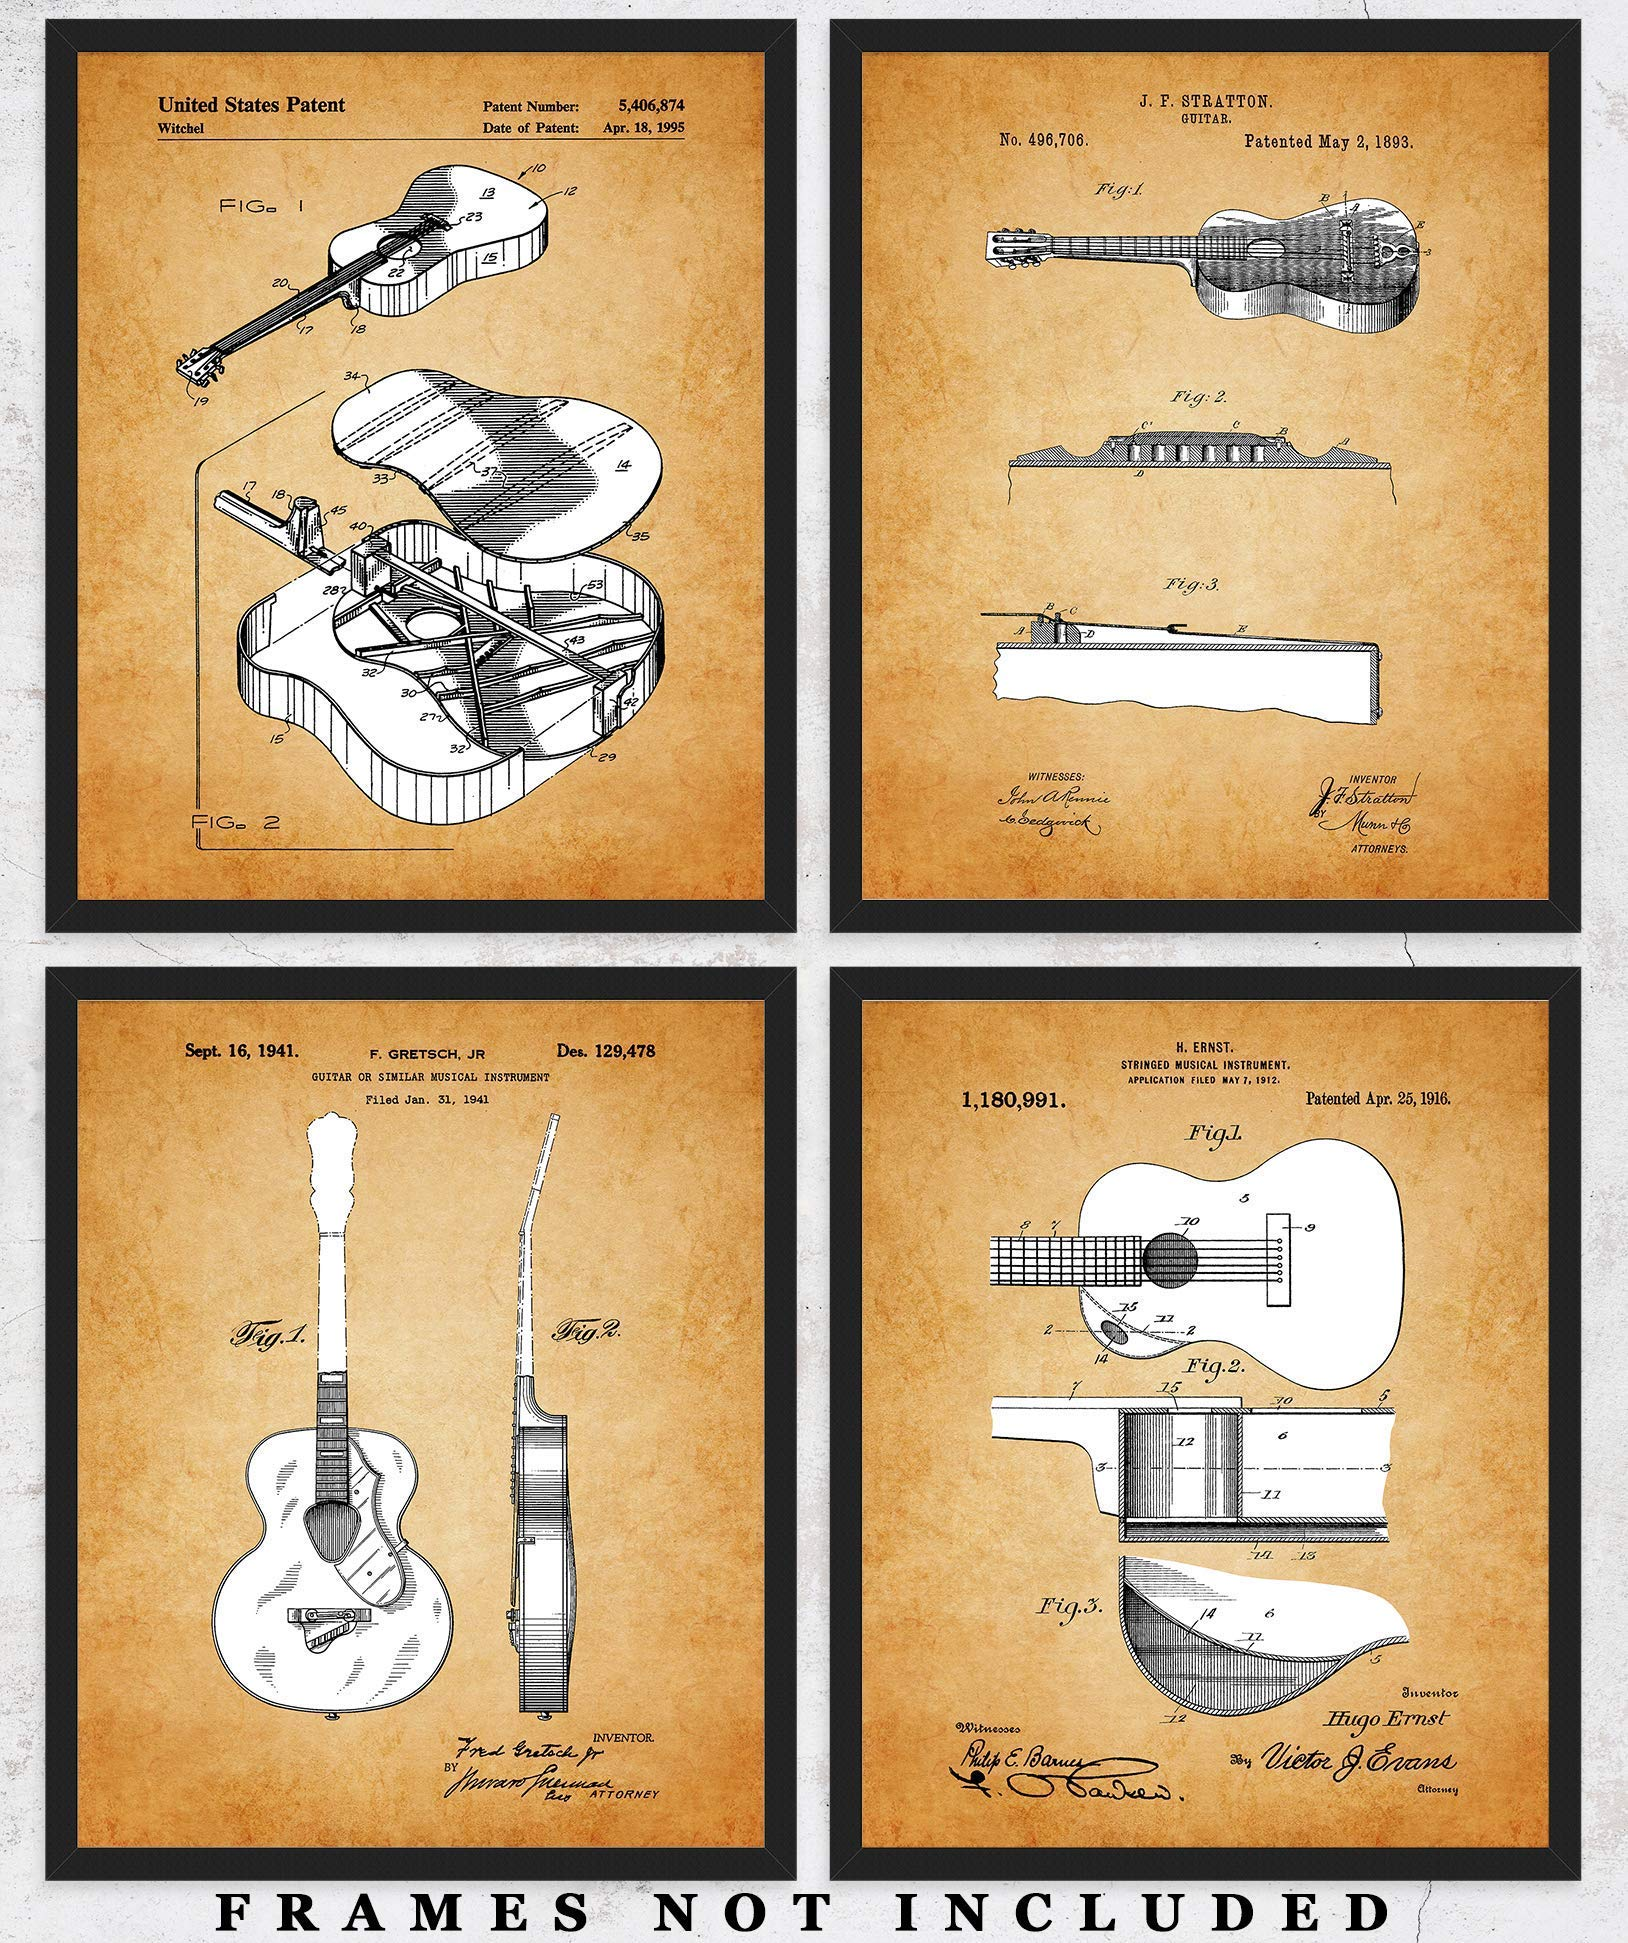 Vintage Acoustic Guitars Patent Wall Art Prints: Unique Room Decor for Boys, Girls, Men & Women - Set of Four (8x10) Unframed Pictures - Great Gift Idea for Music Lovers by Qi Packs